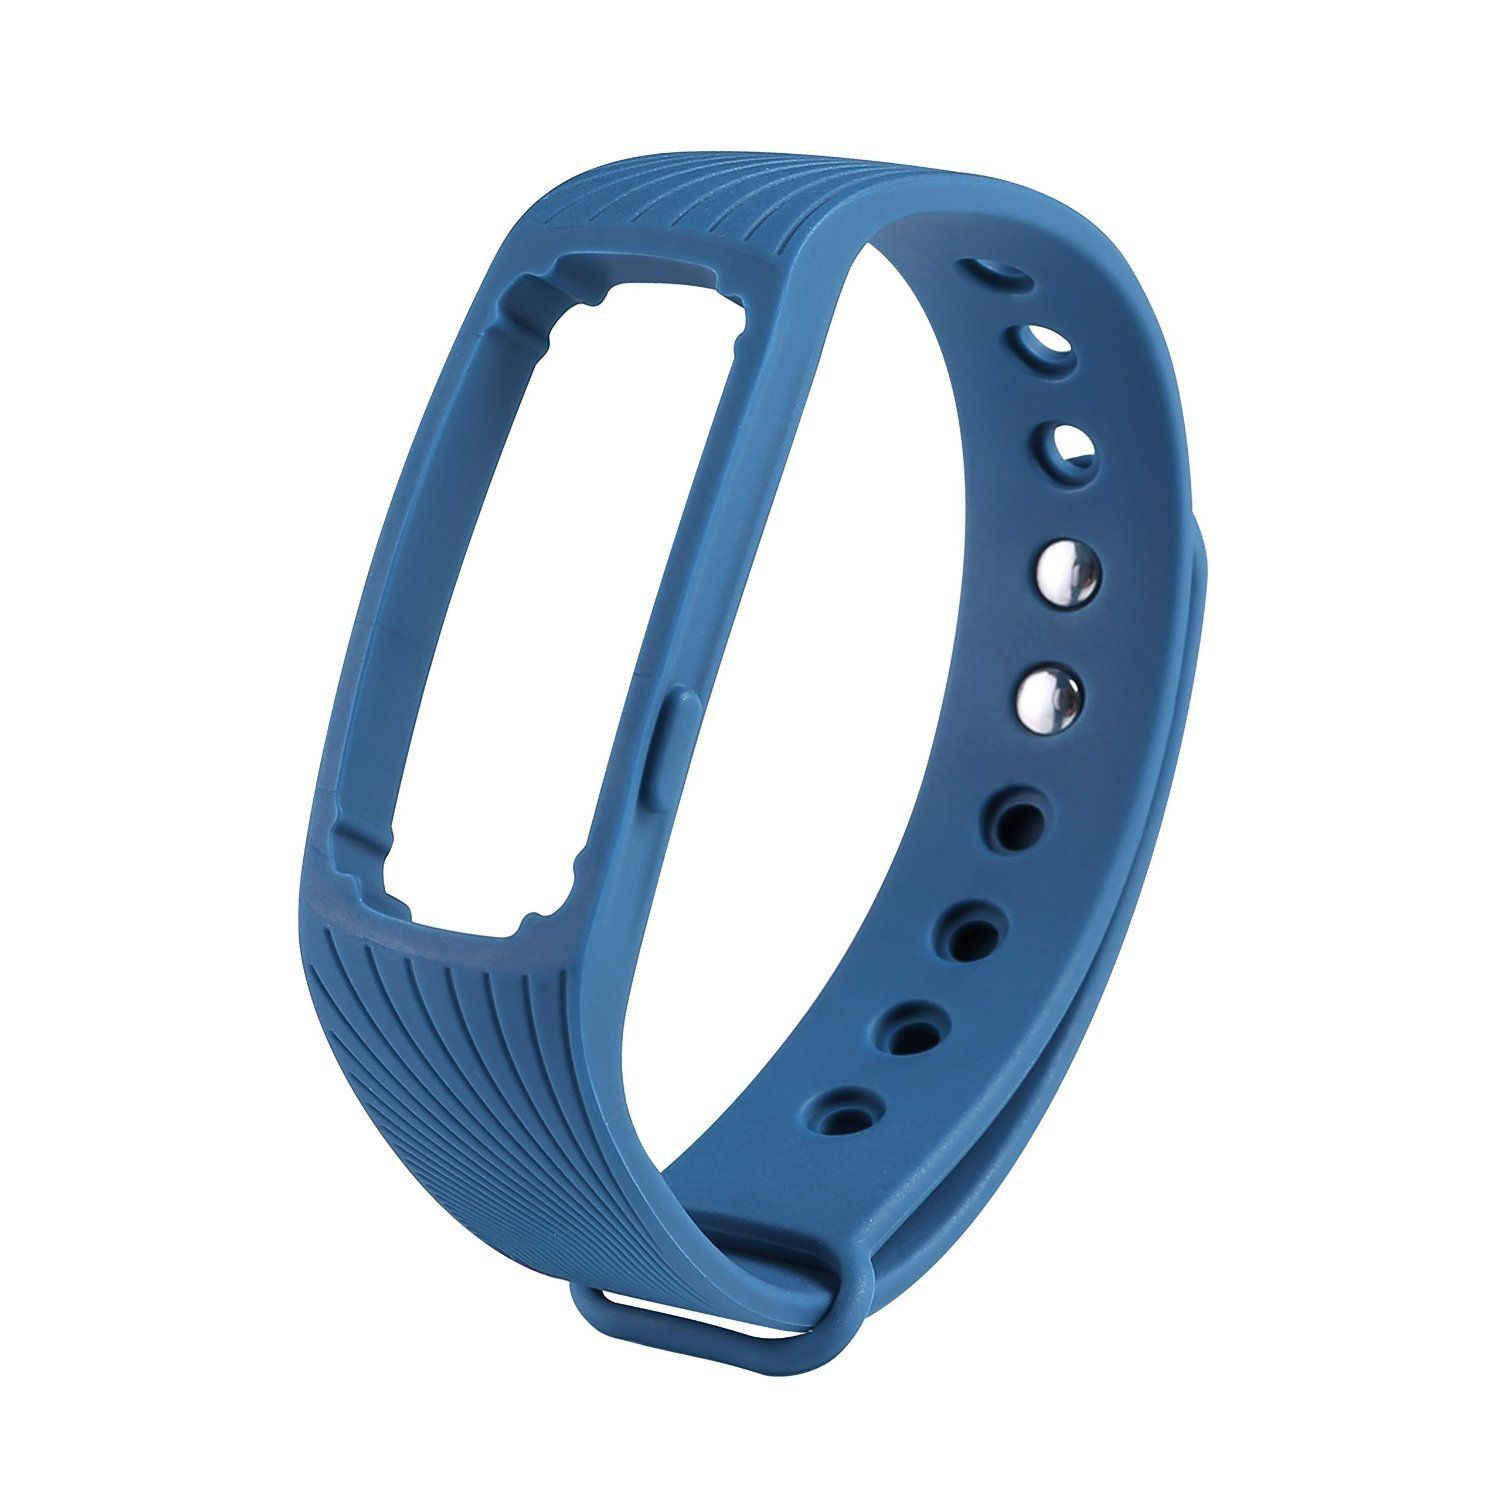 Multicolor Replacement Clip Belt Holder Case Cover For Fitbit One Smart Tracker